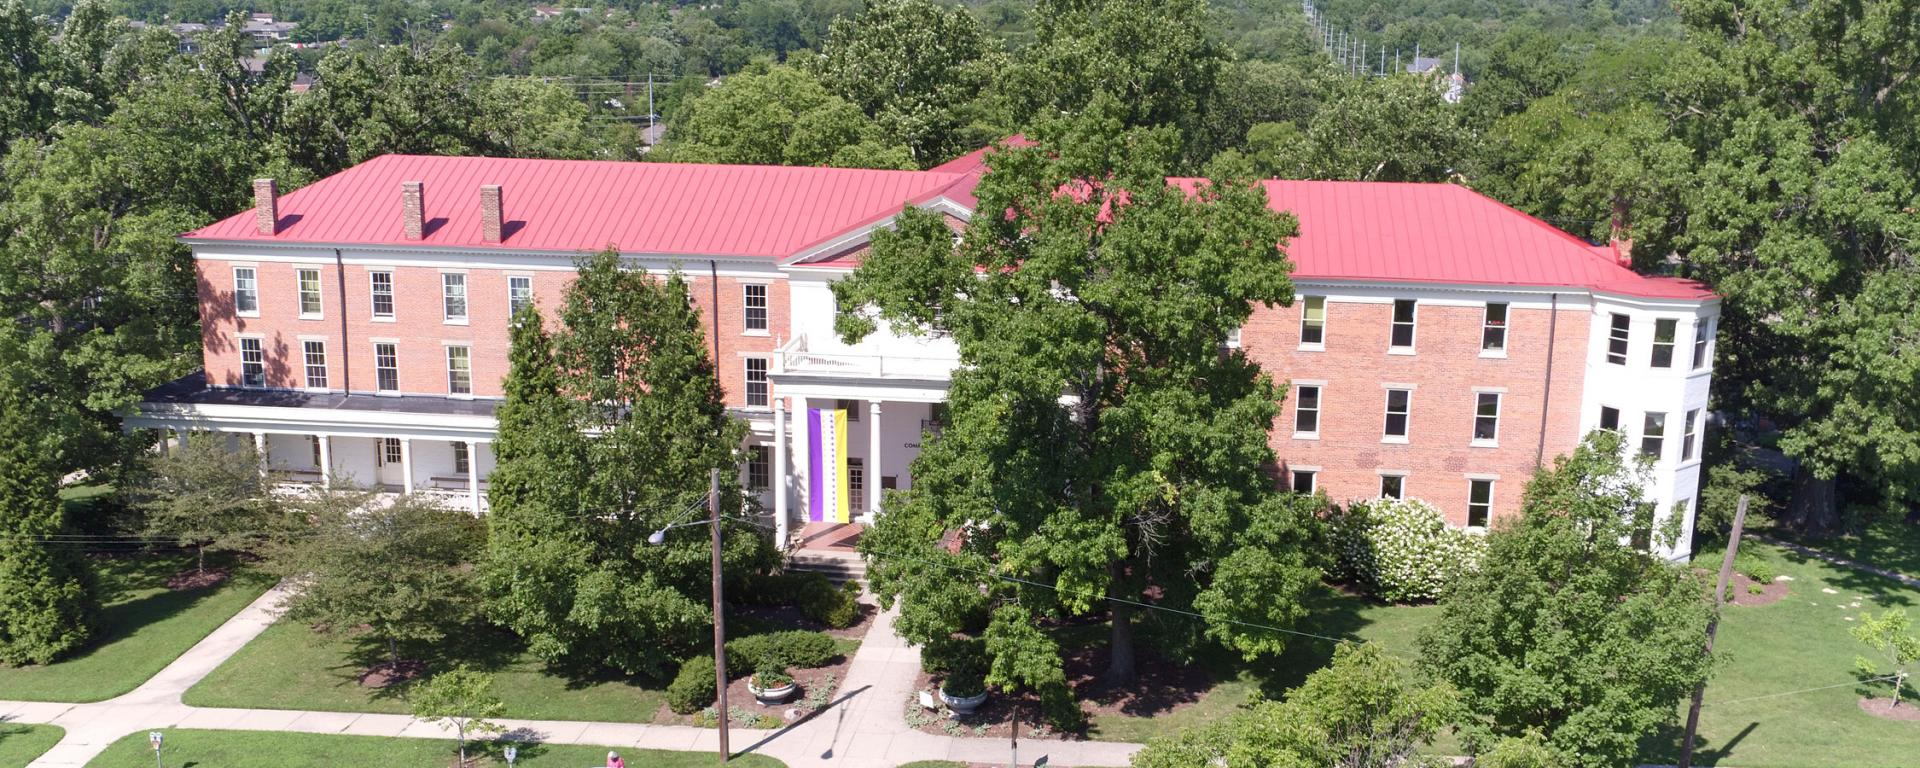 aerial photo of building